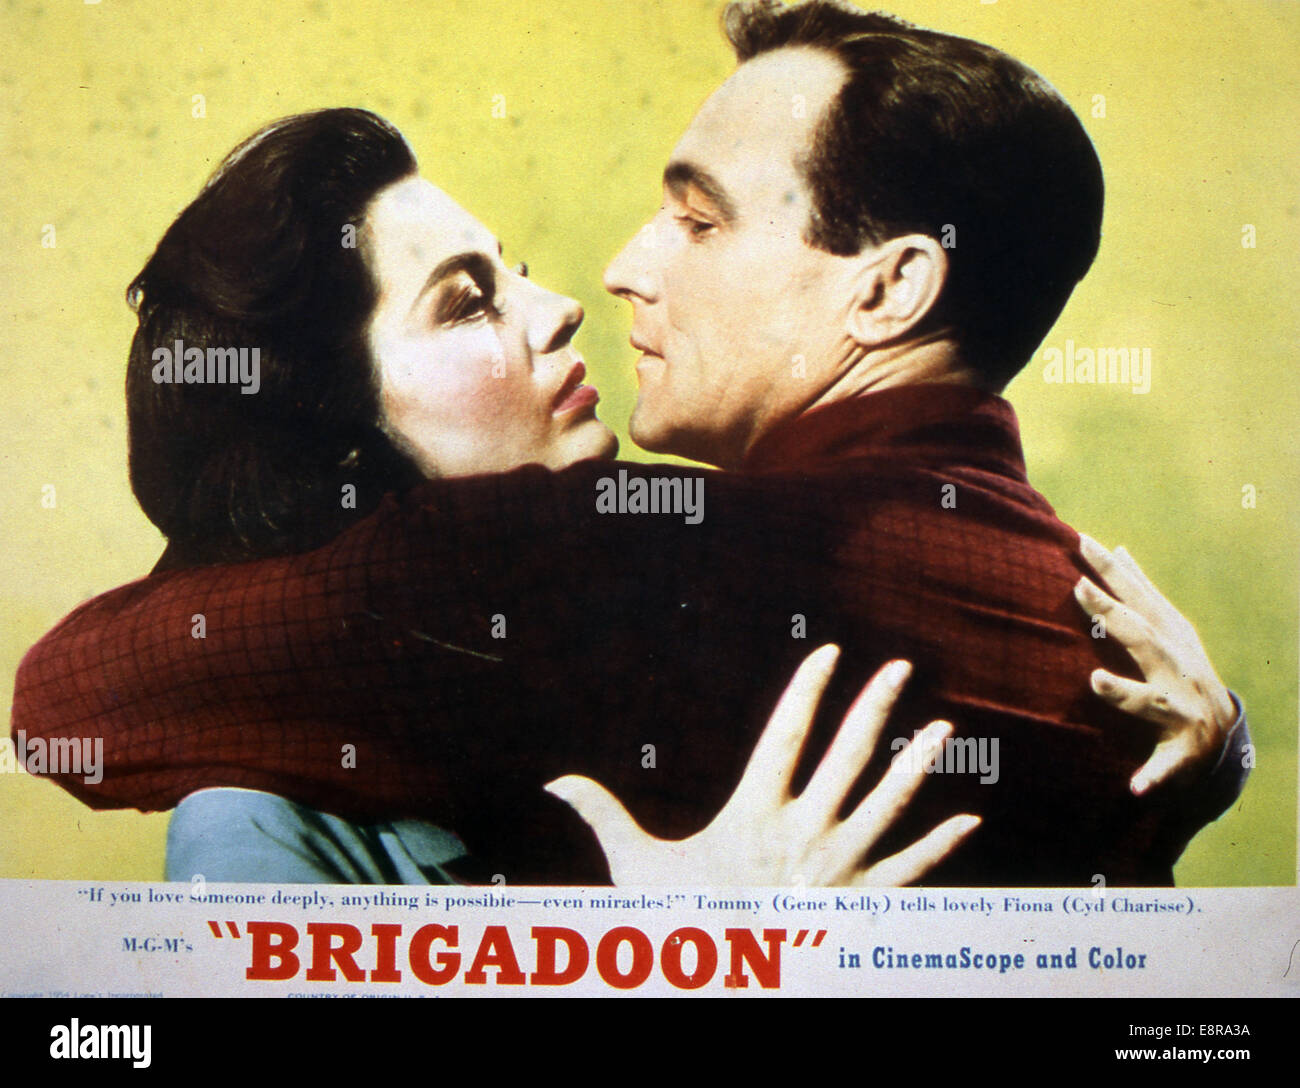 BRIGADOON  Poster for 1954 MGM film musical with Cyd Charisse and Gene Kelly - Stock Image